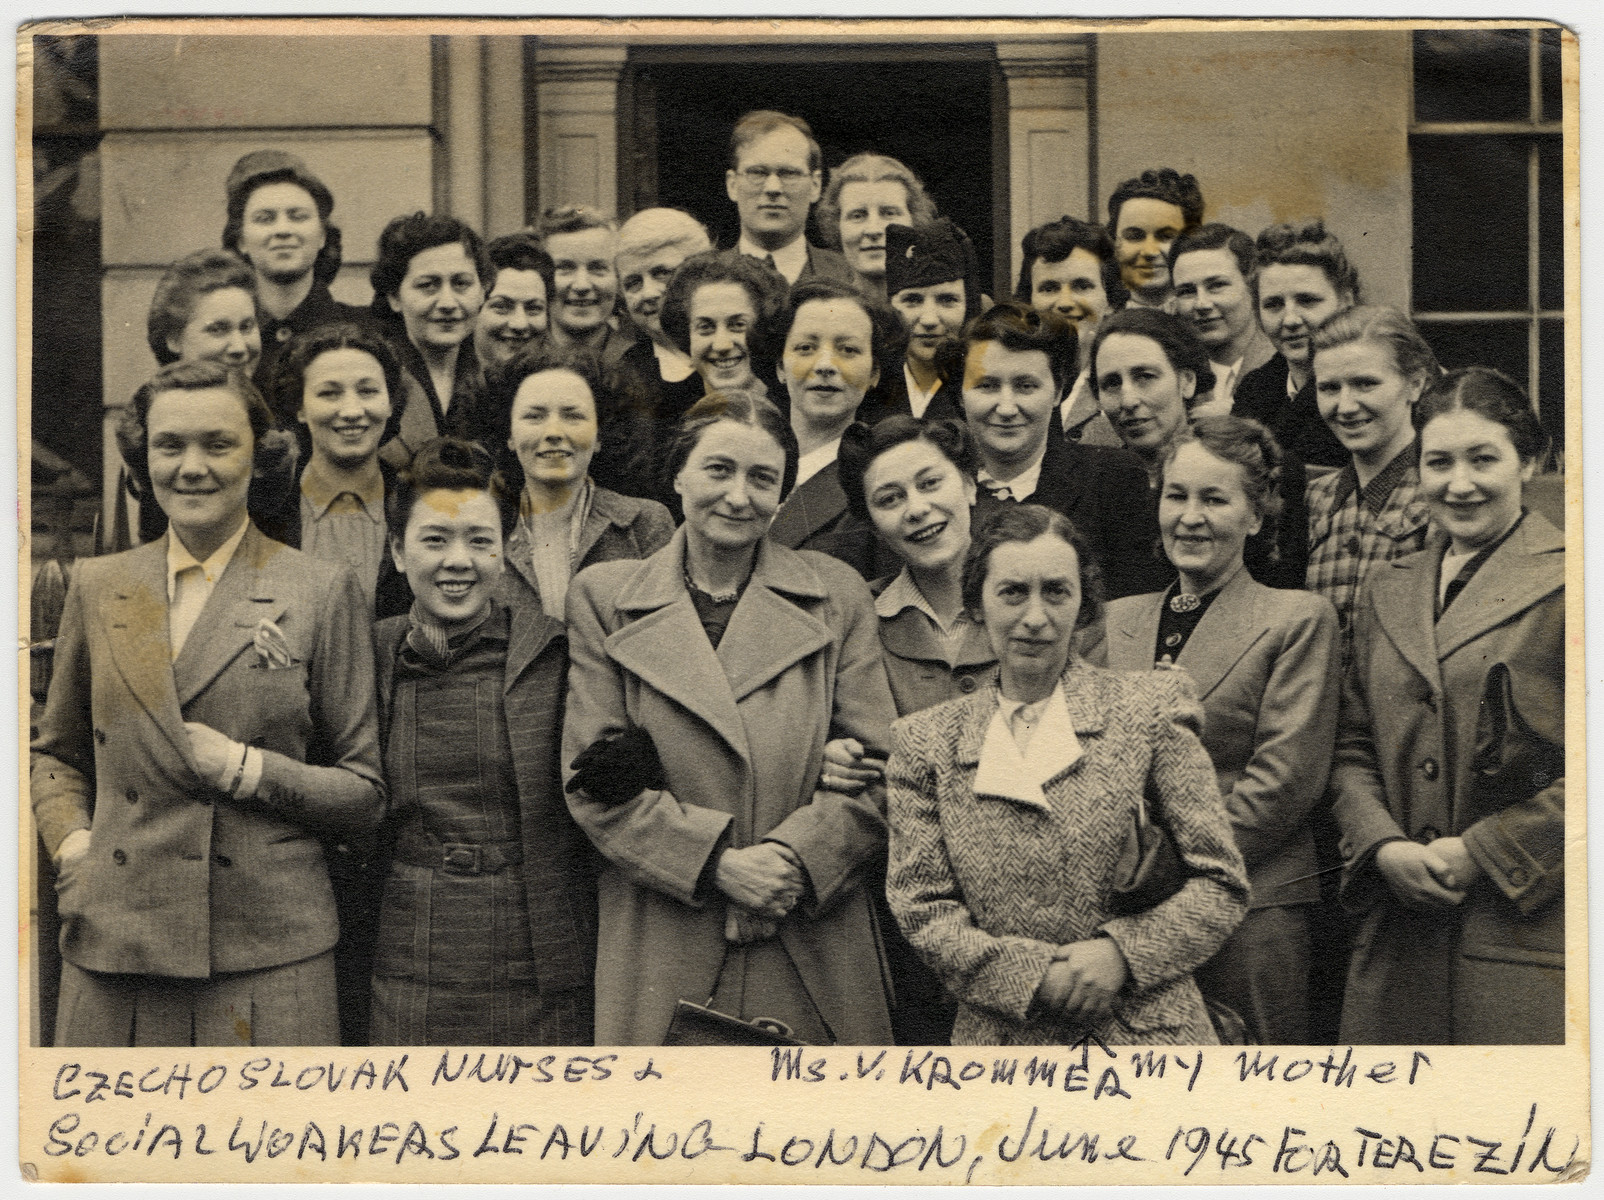 A group of Czech and British trained social workers and nurses prepares to leave London for Theresienstadt to provide assistance to survivors.  Pictured in the front in the tweed suit is V. Krommer, mother of the donor.